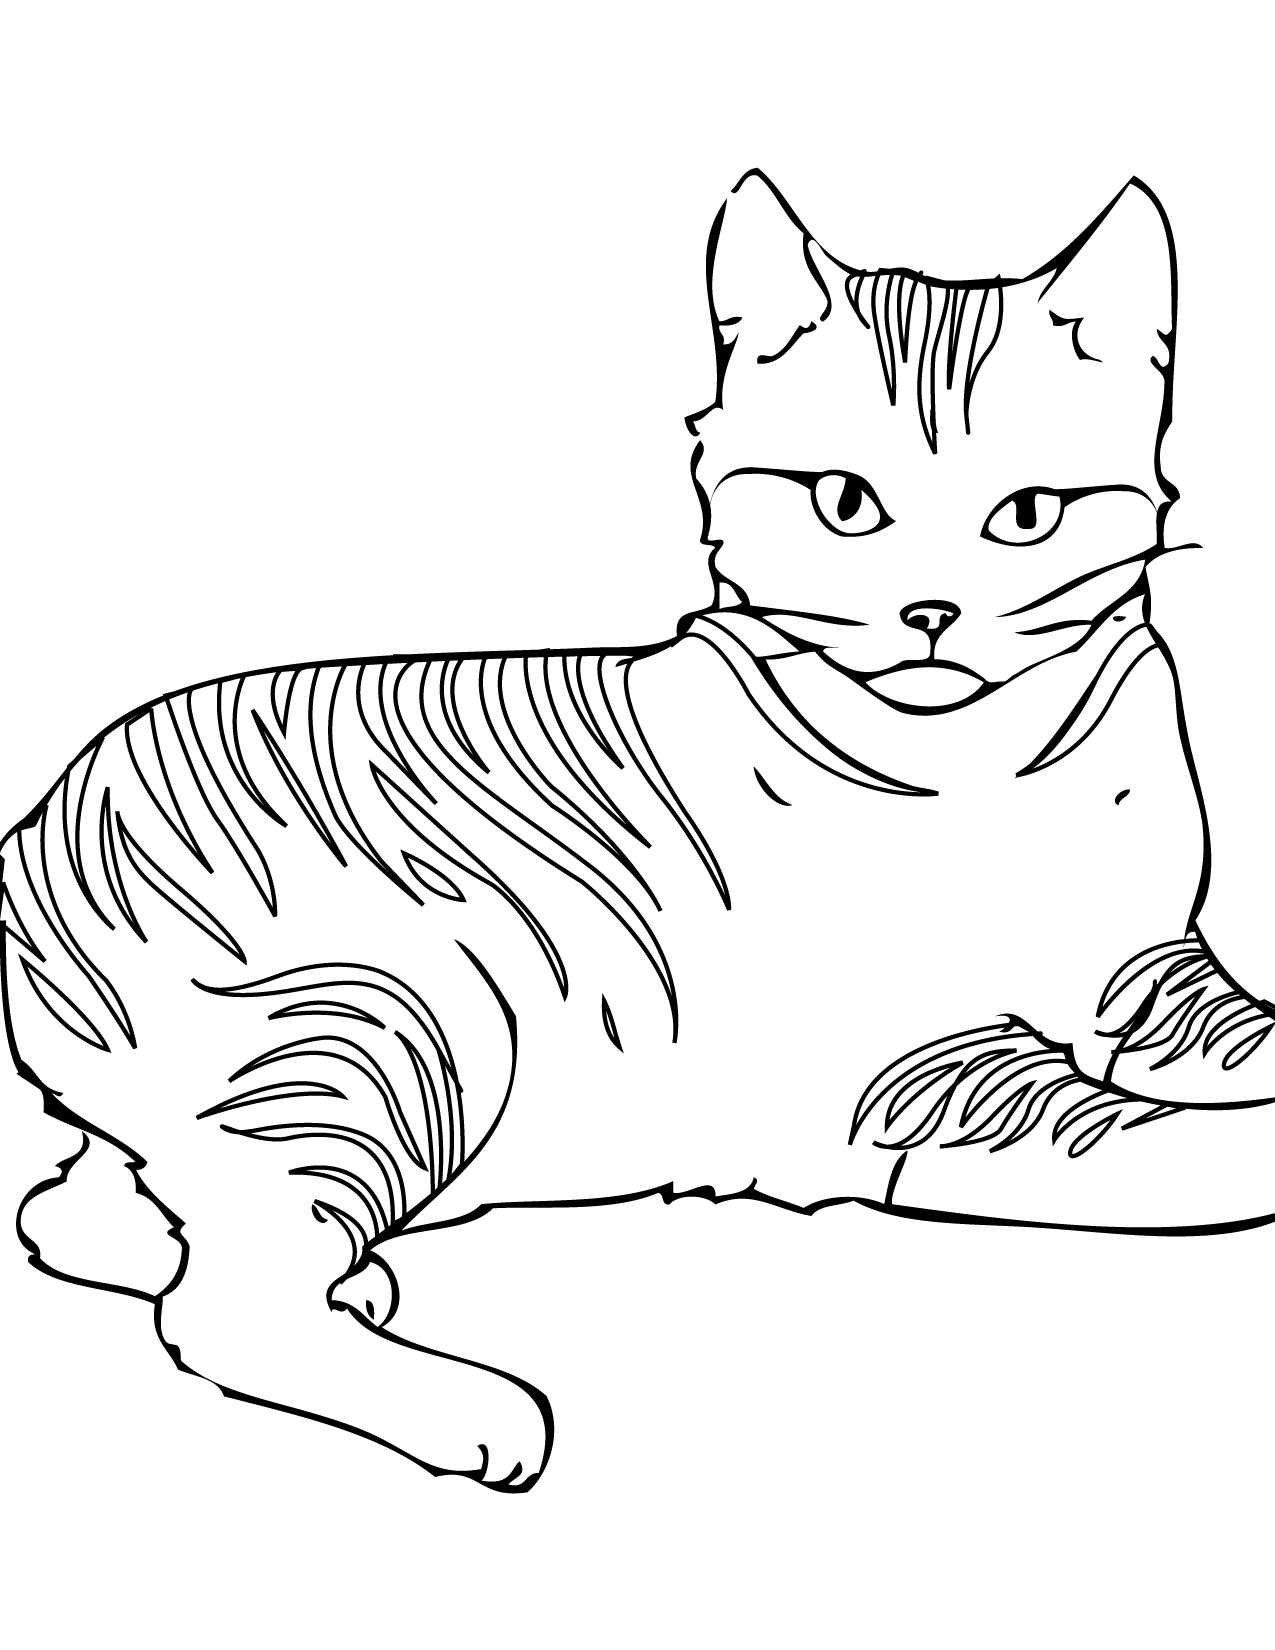 printable cat free printable cat coloring pages for kids printable cat 1 4